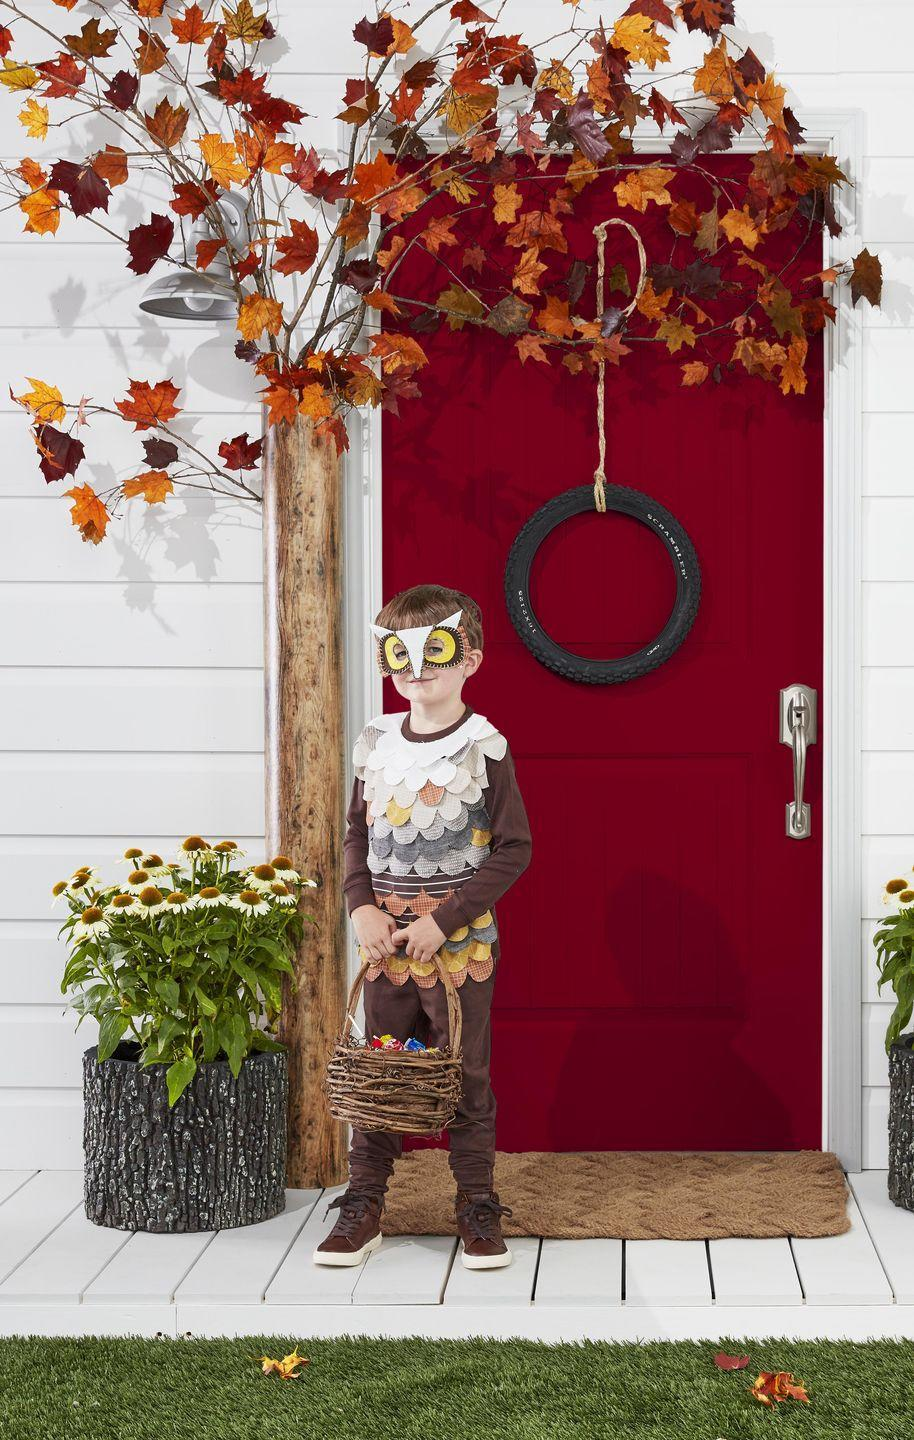 <p>Create a friendly owl house with this fun DIY tree and tire swing wreath.</p><p><strong>Make the tree</strong><strong>:</strong> Wrap a tall mailing tube in wood grain contact paper. Attach it to the door frame with nails or double sided velcro. Stuff fall branches into the top of the tube, holding them in place with nails. </p>